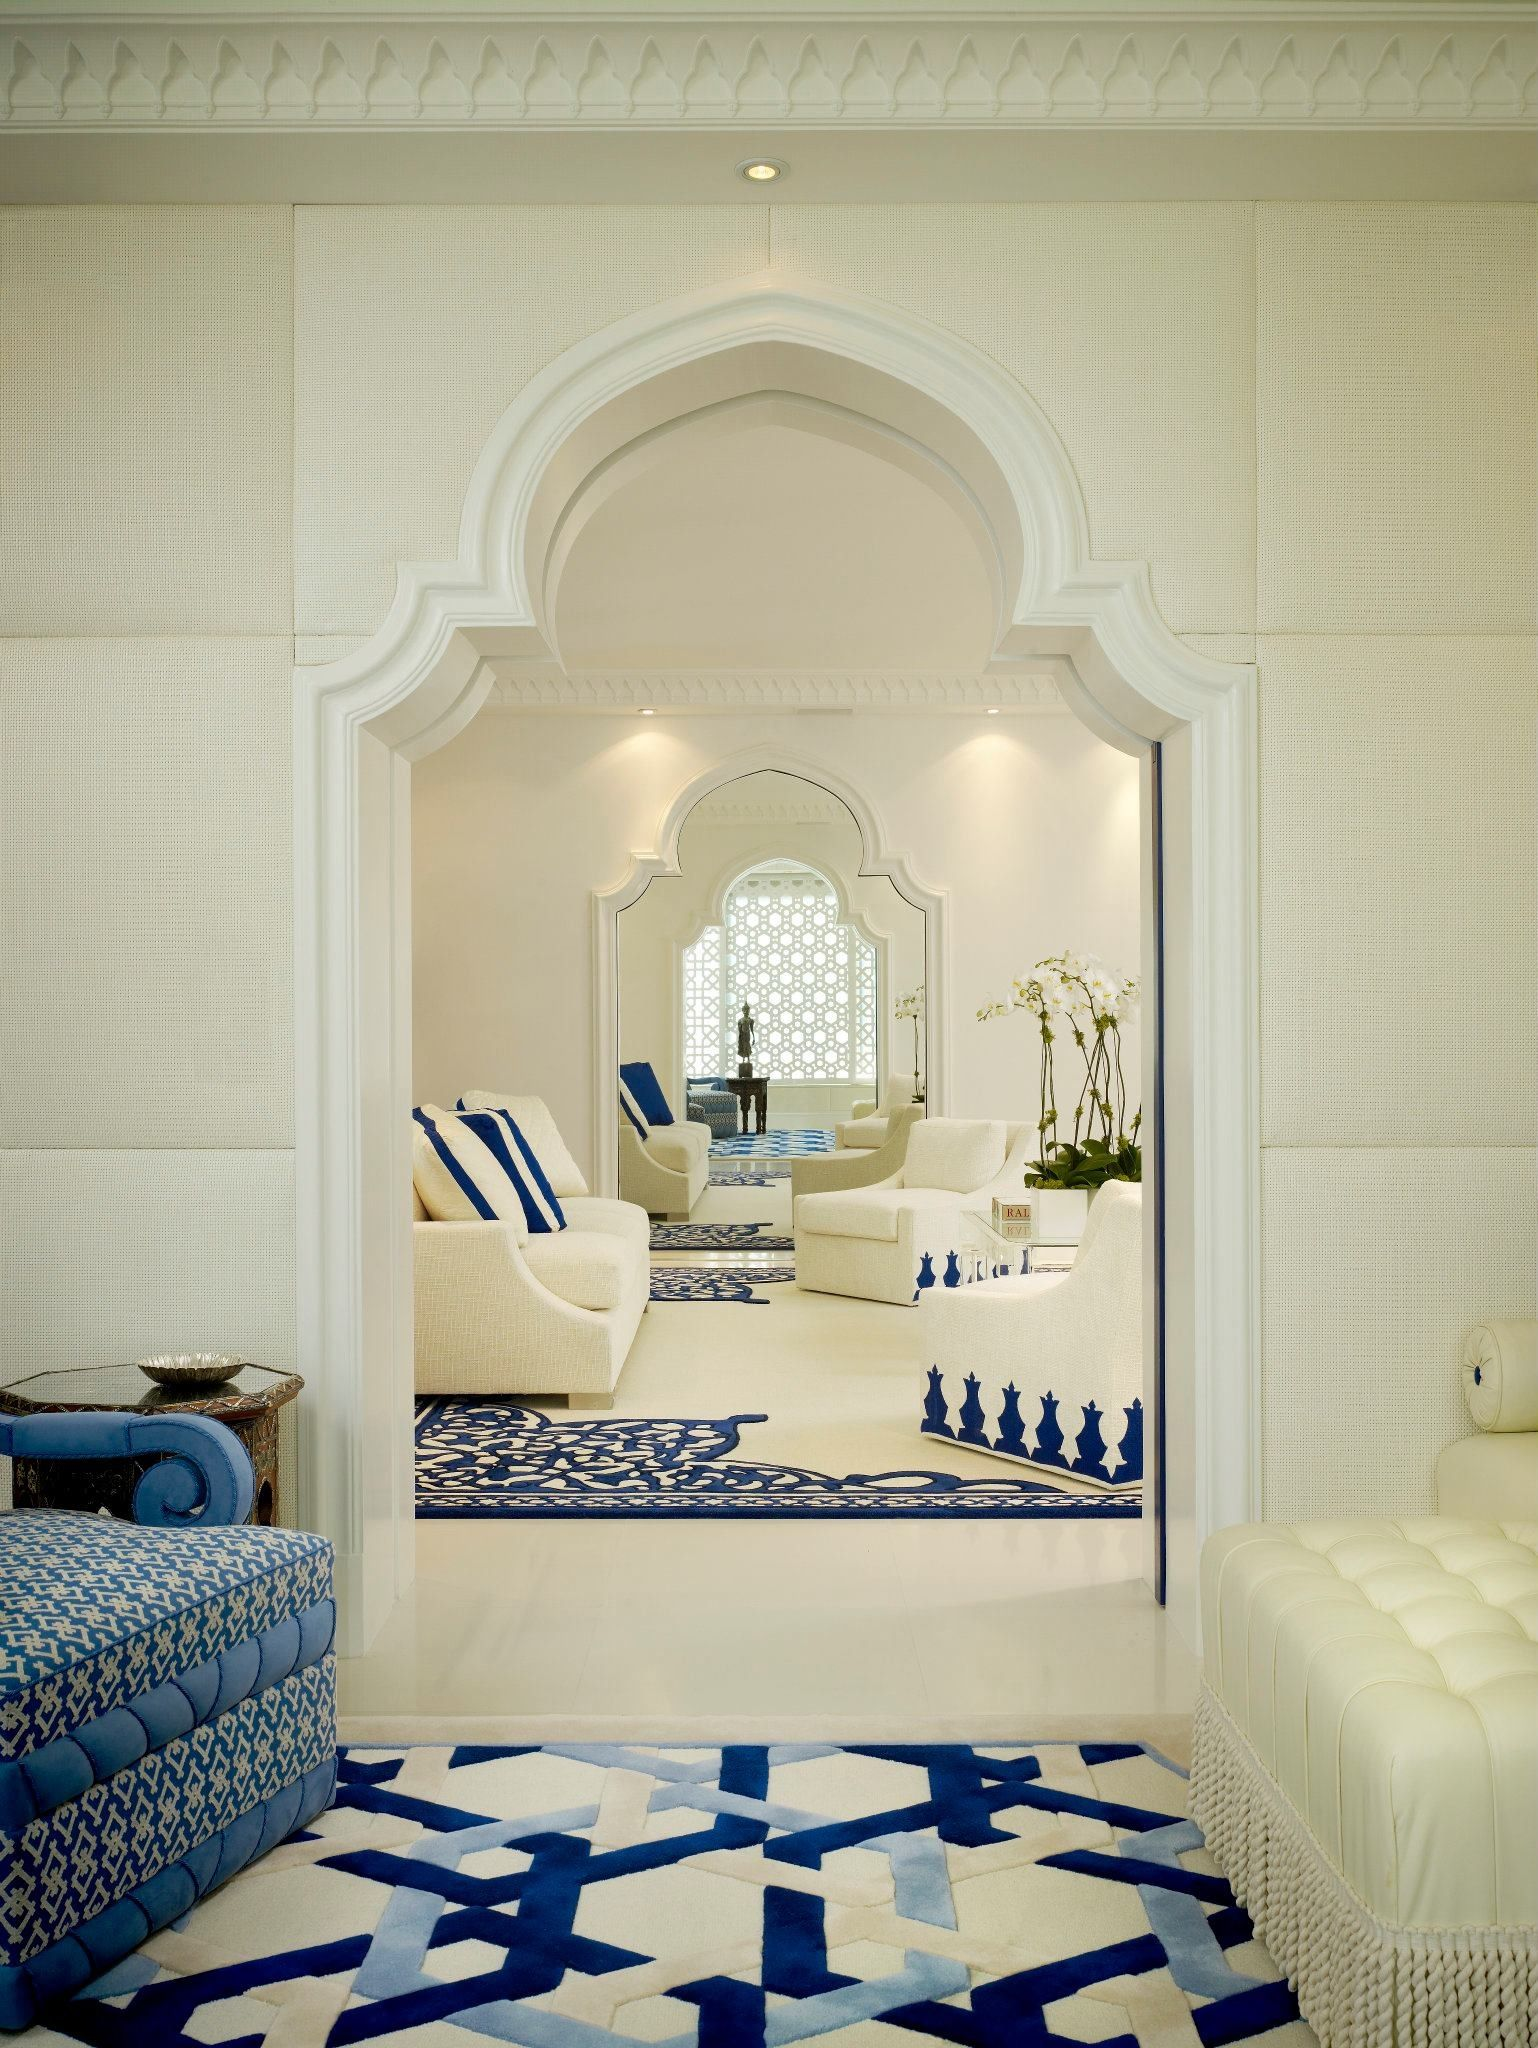 Middle eastern inspired interior | Interiors #1 | Pinterest | Middle ...